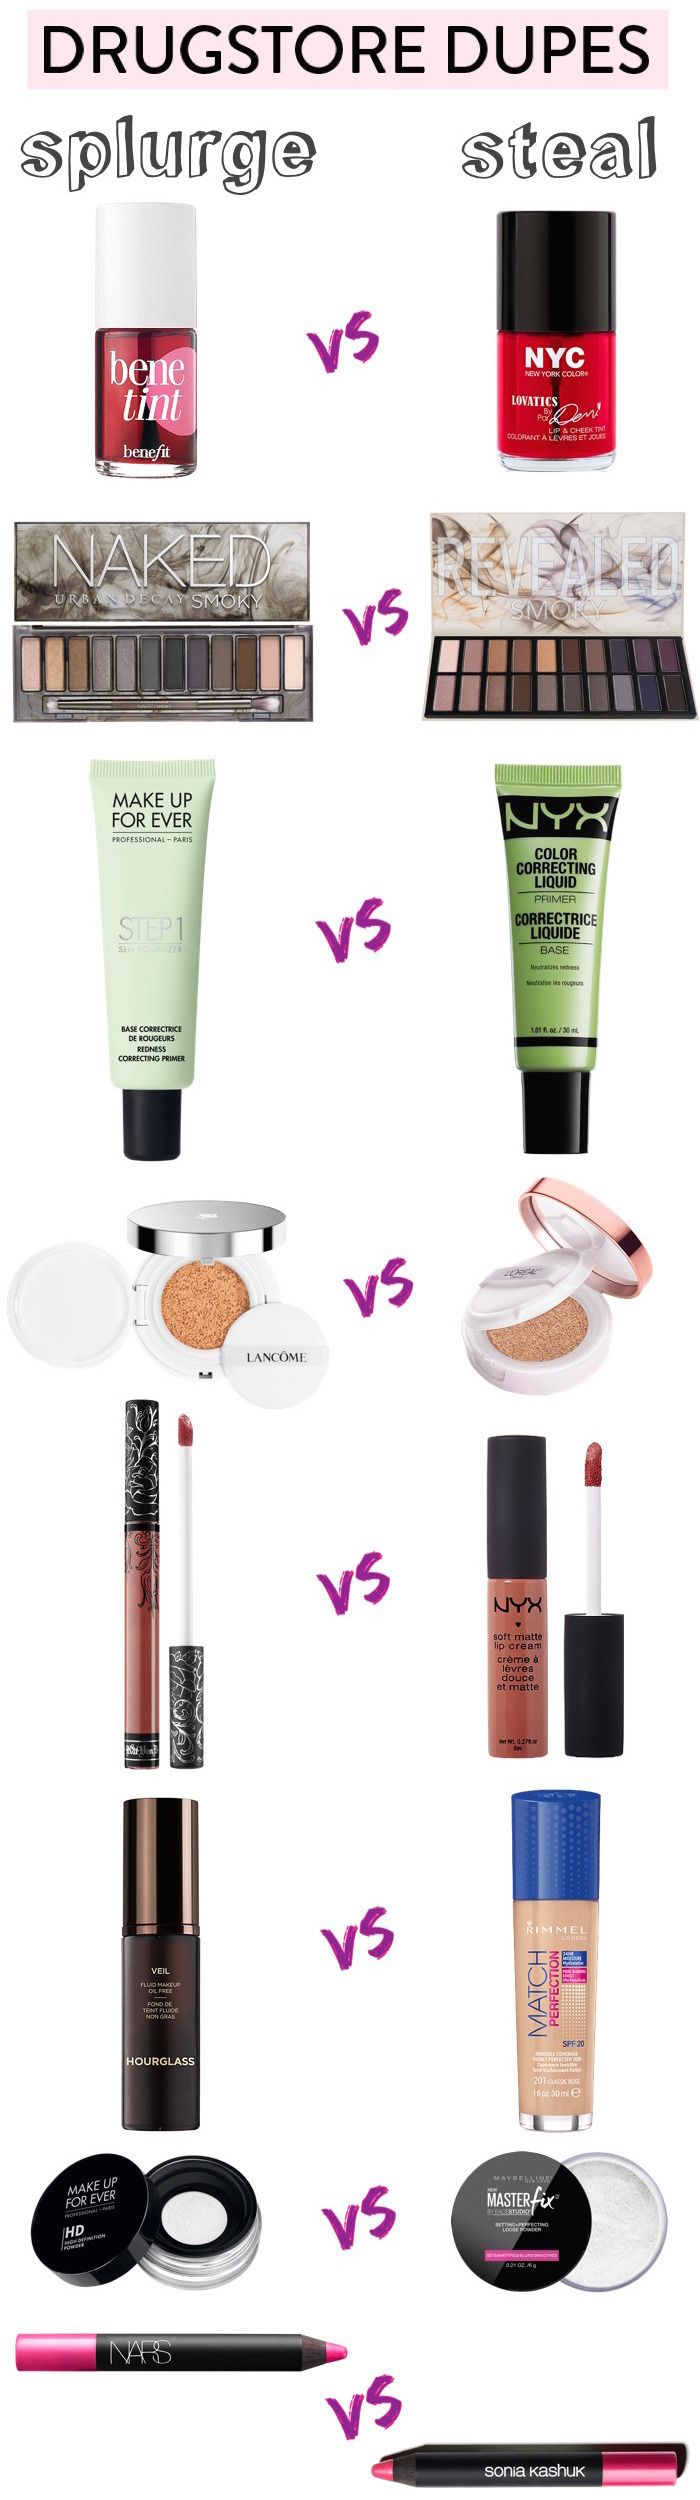 Beauty Doubles 50+ Fabulous Drugstore Dupes For HighEnd